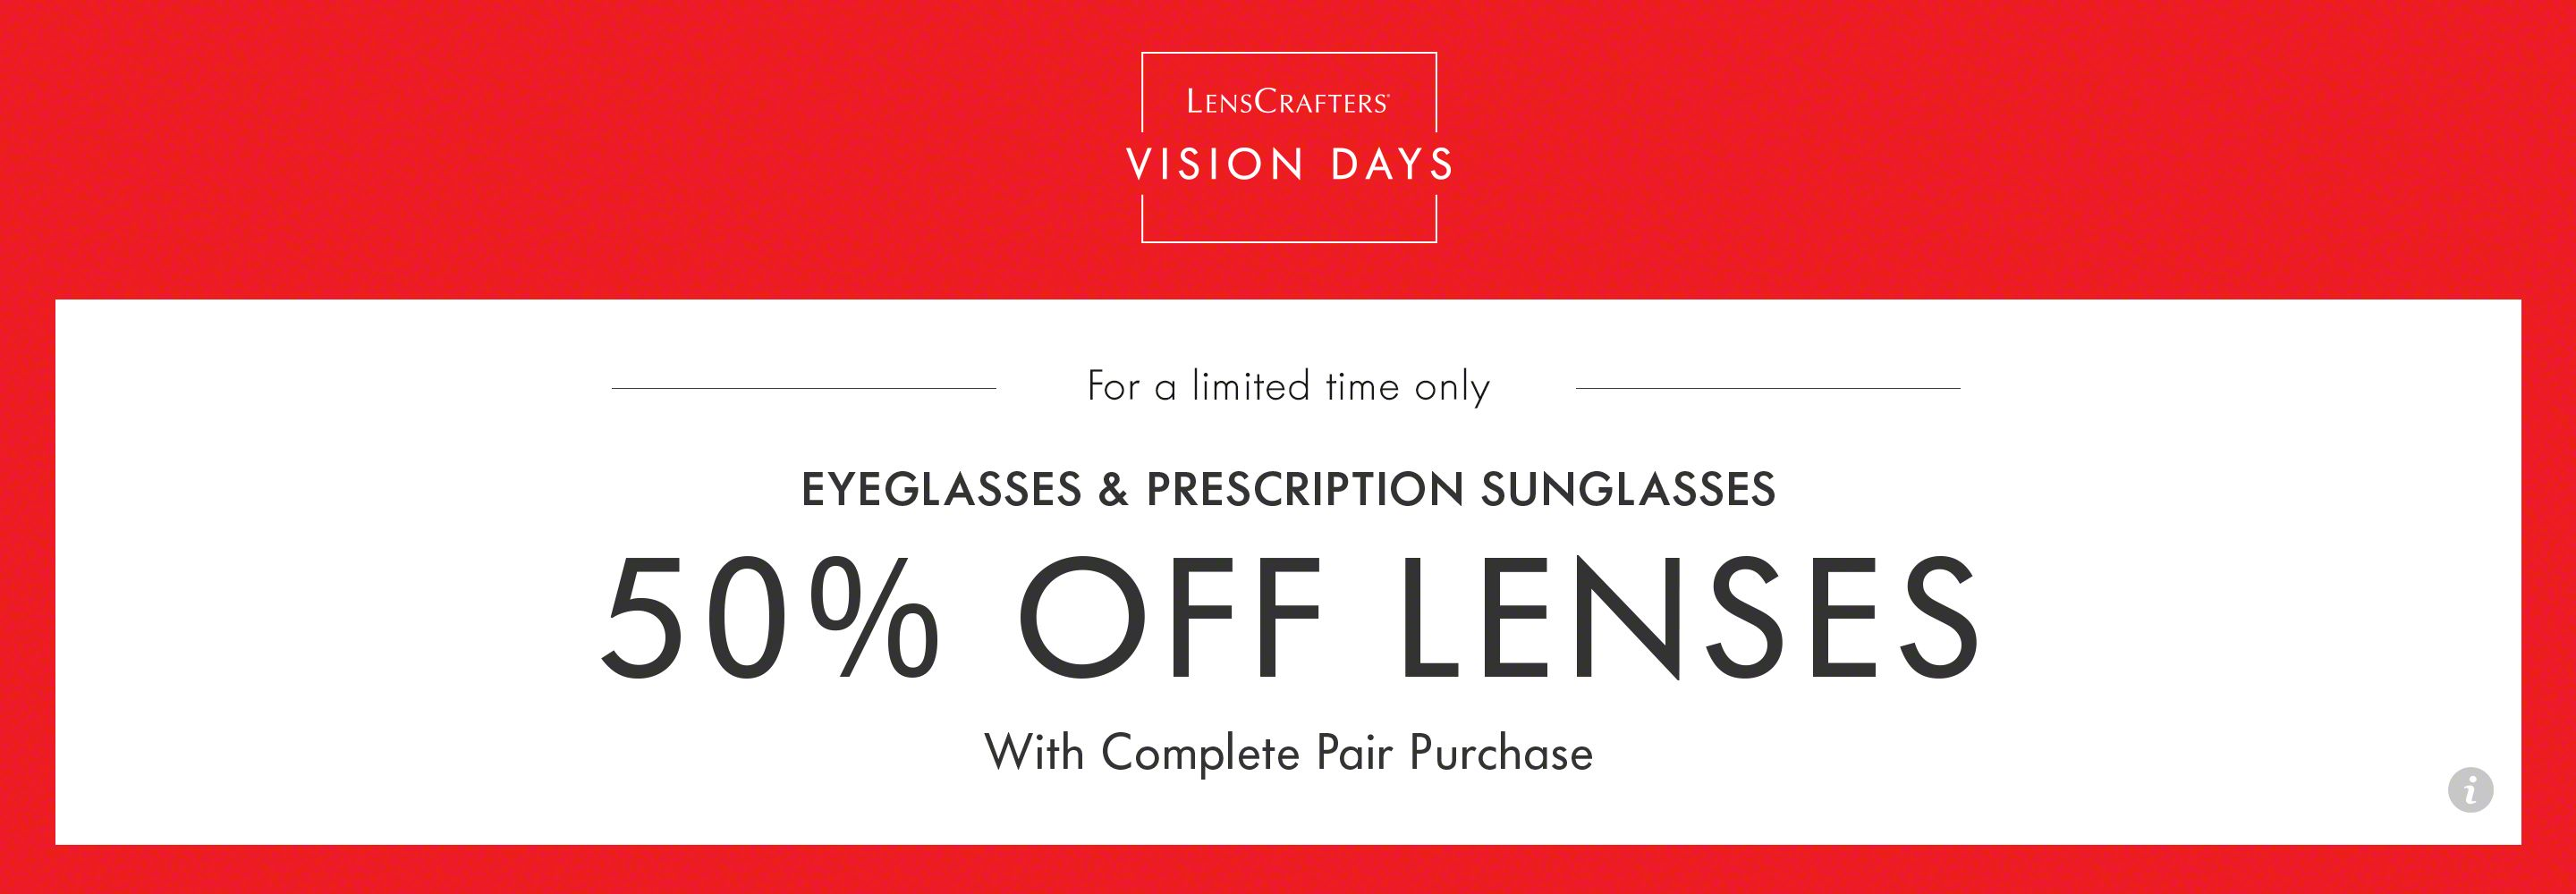 d0ffd7ccae46 Cannot be combined with vision benefits, other offers, previous purchases,  readers or non-prescription sunglasses.